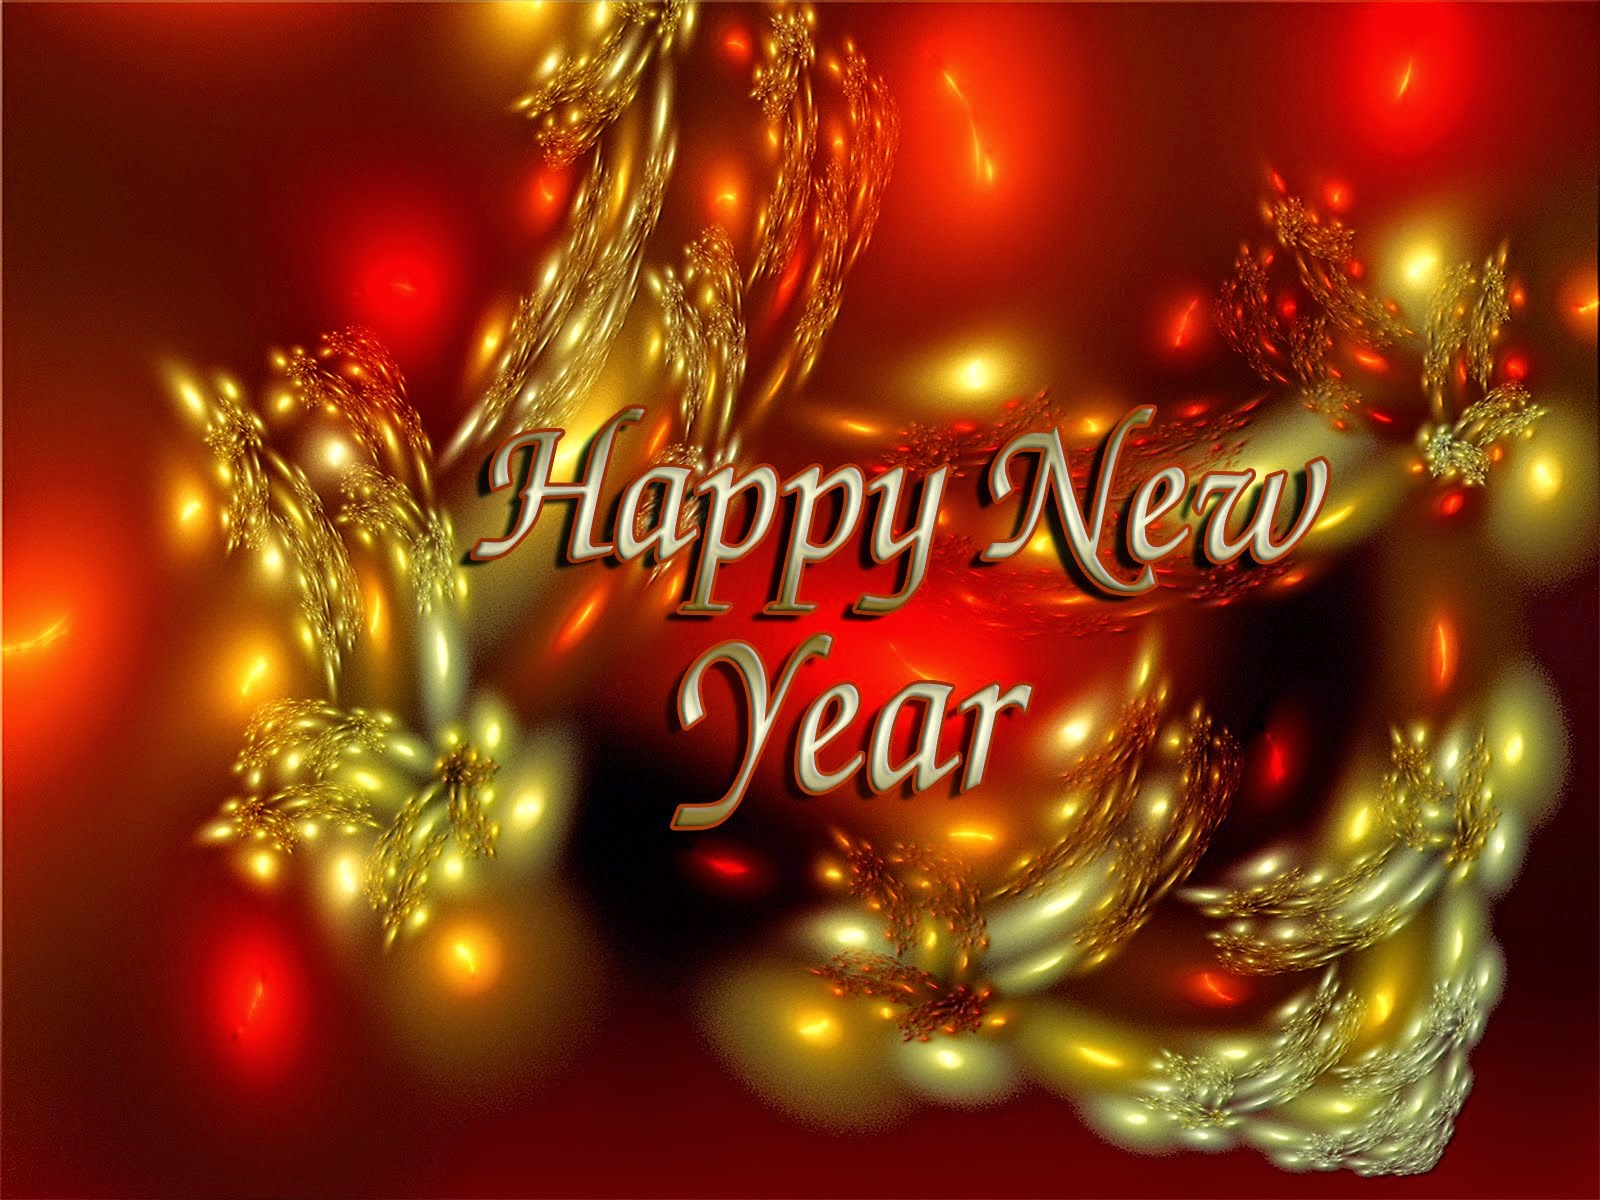 Free download free new year pictures 2016 hd Happy New Year 2020